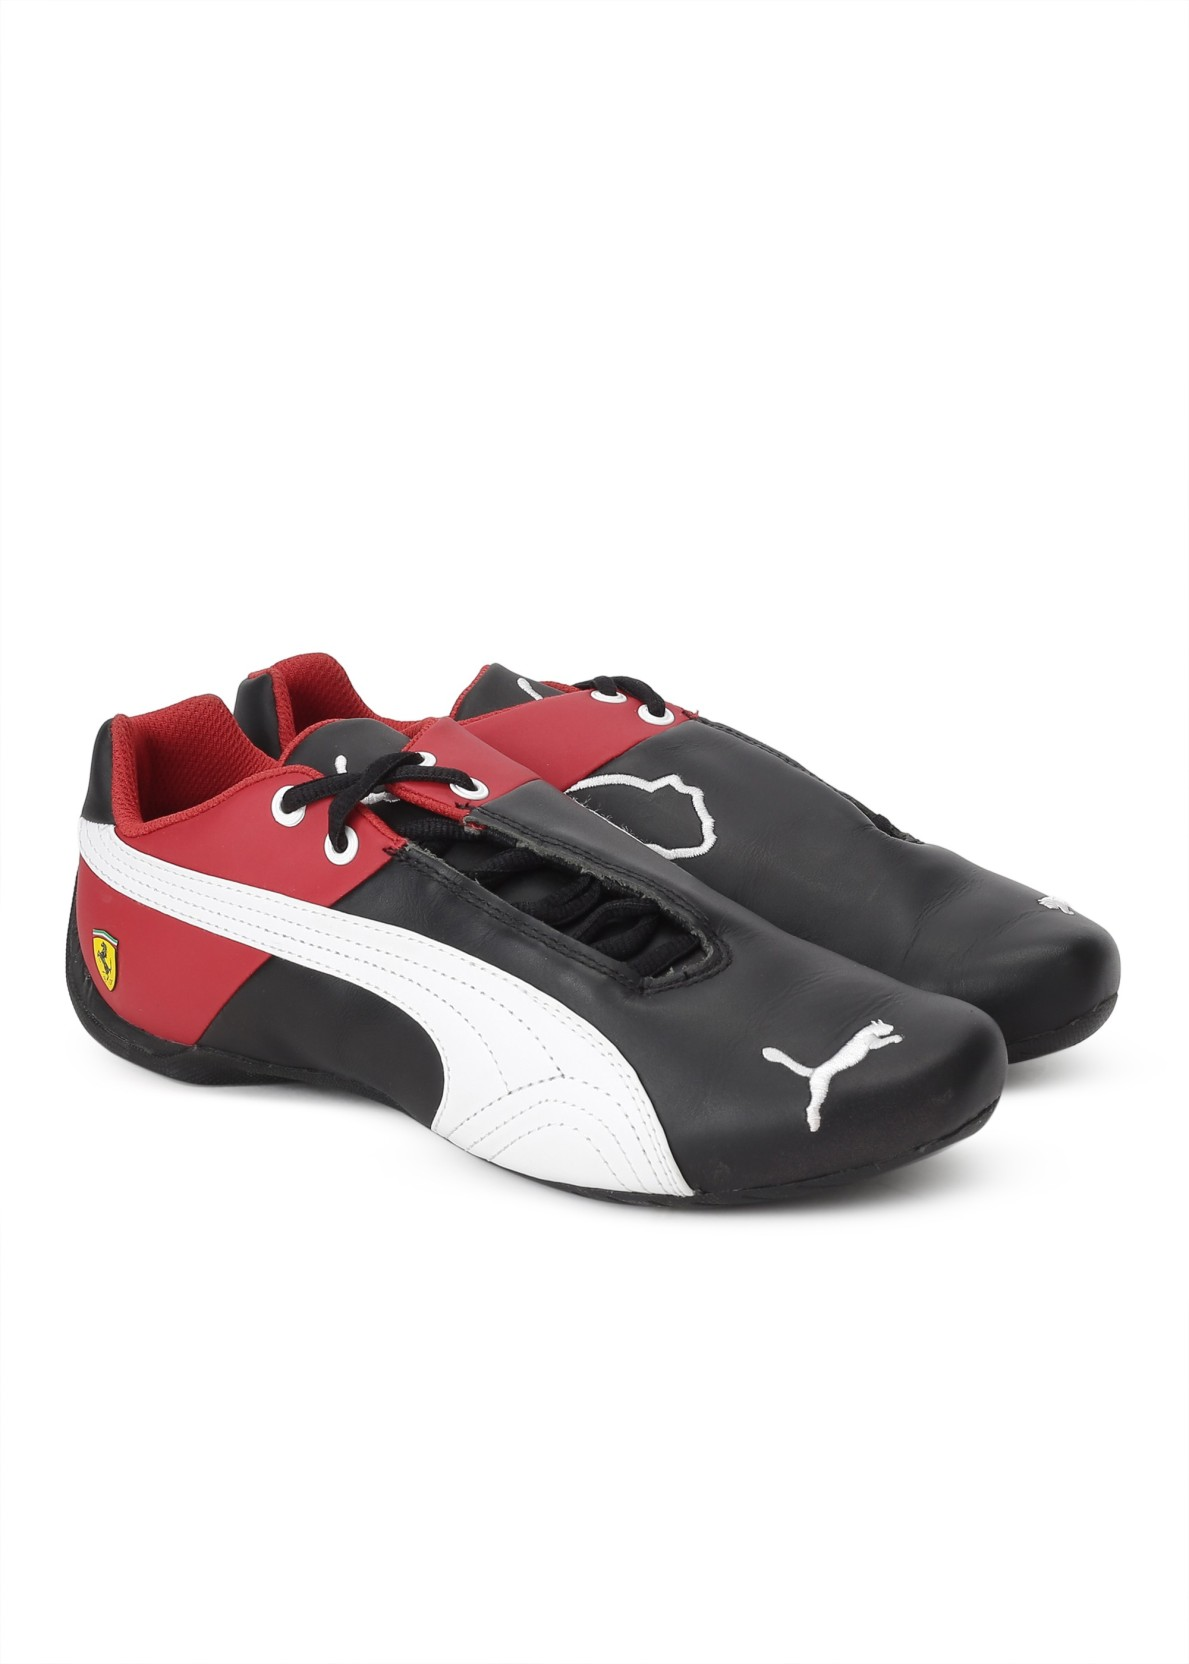 Los Angeles aacfe 6cc3f Puma Future Cat SF OG Sneakers For Men - Buy Black-White ...